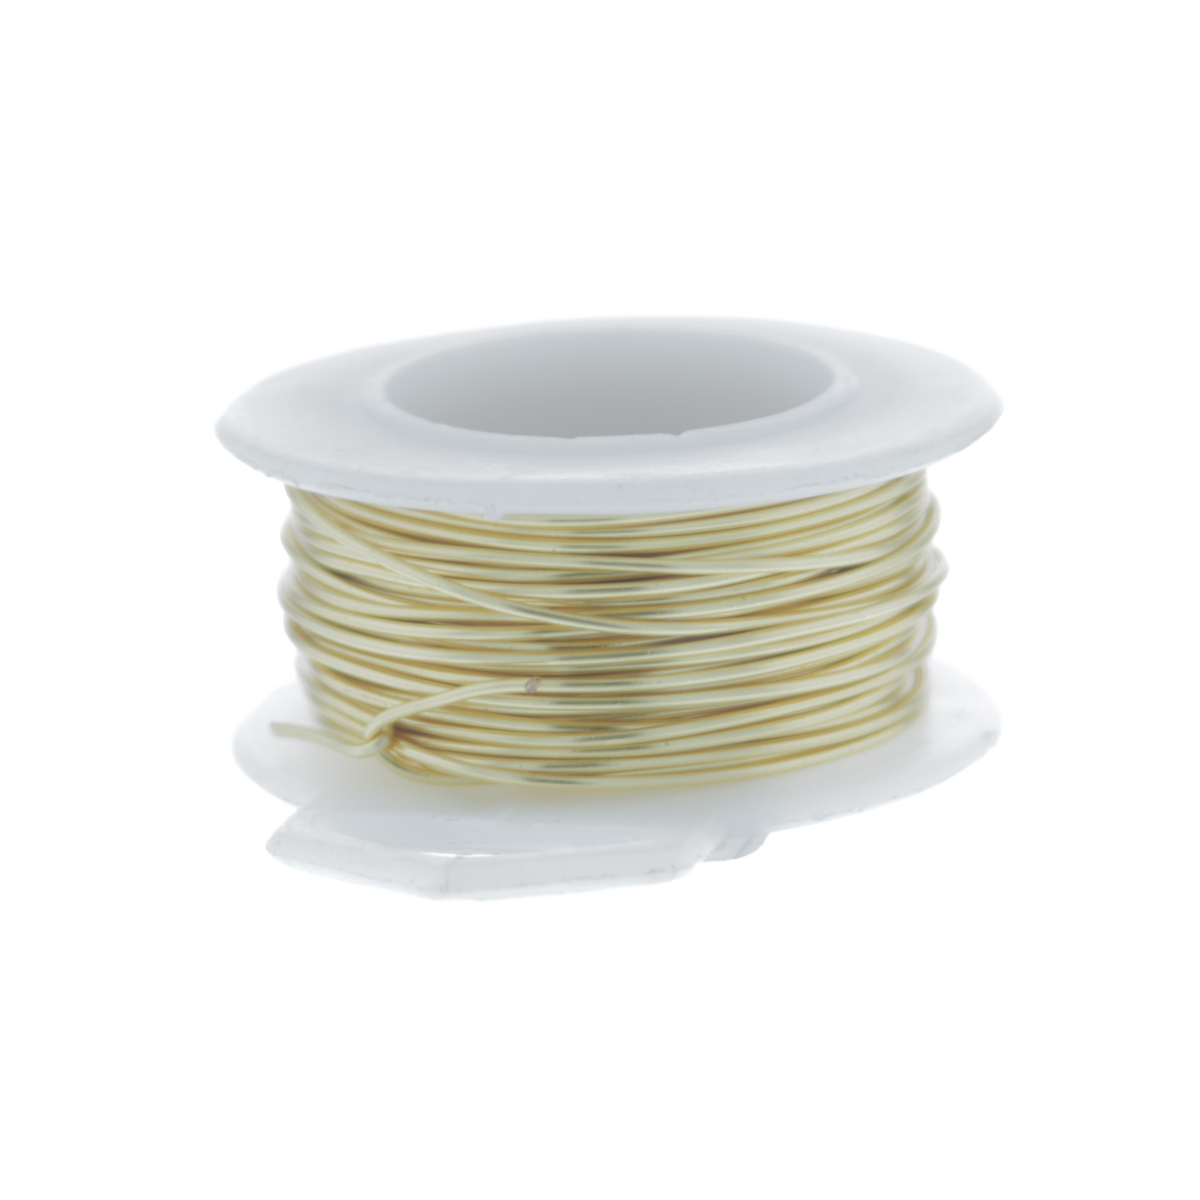 30 Gauge Round Silver Plated Gold Copper Craft Wire - 150 ft